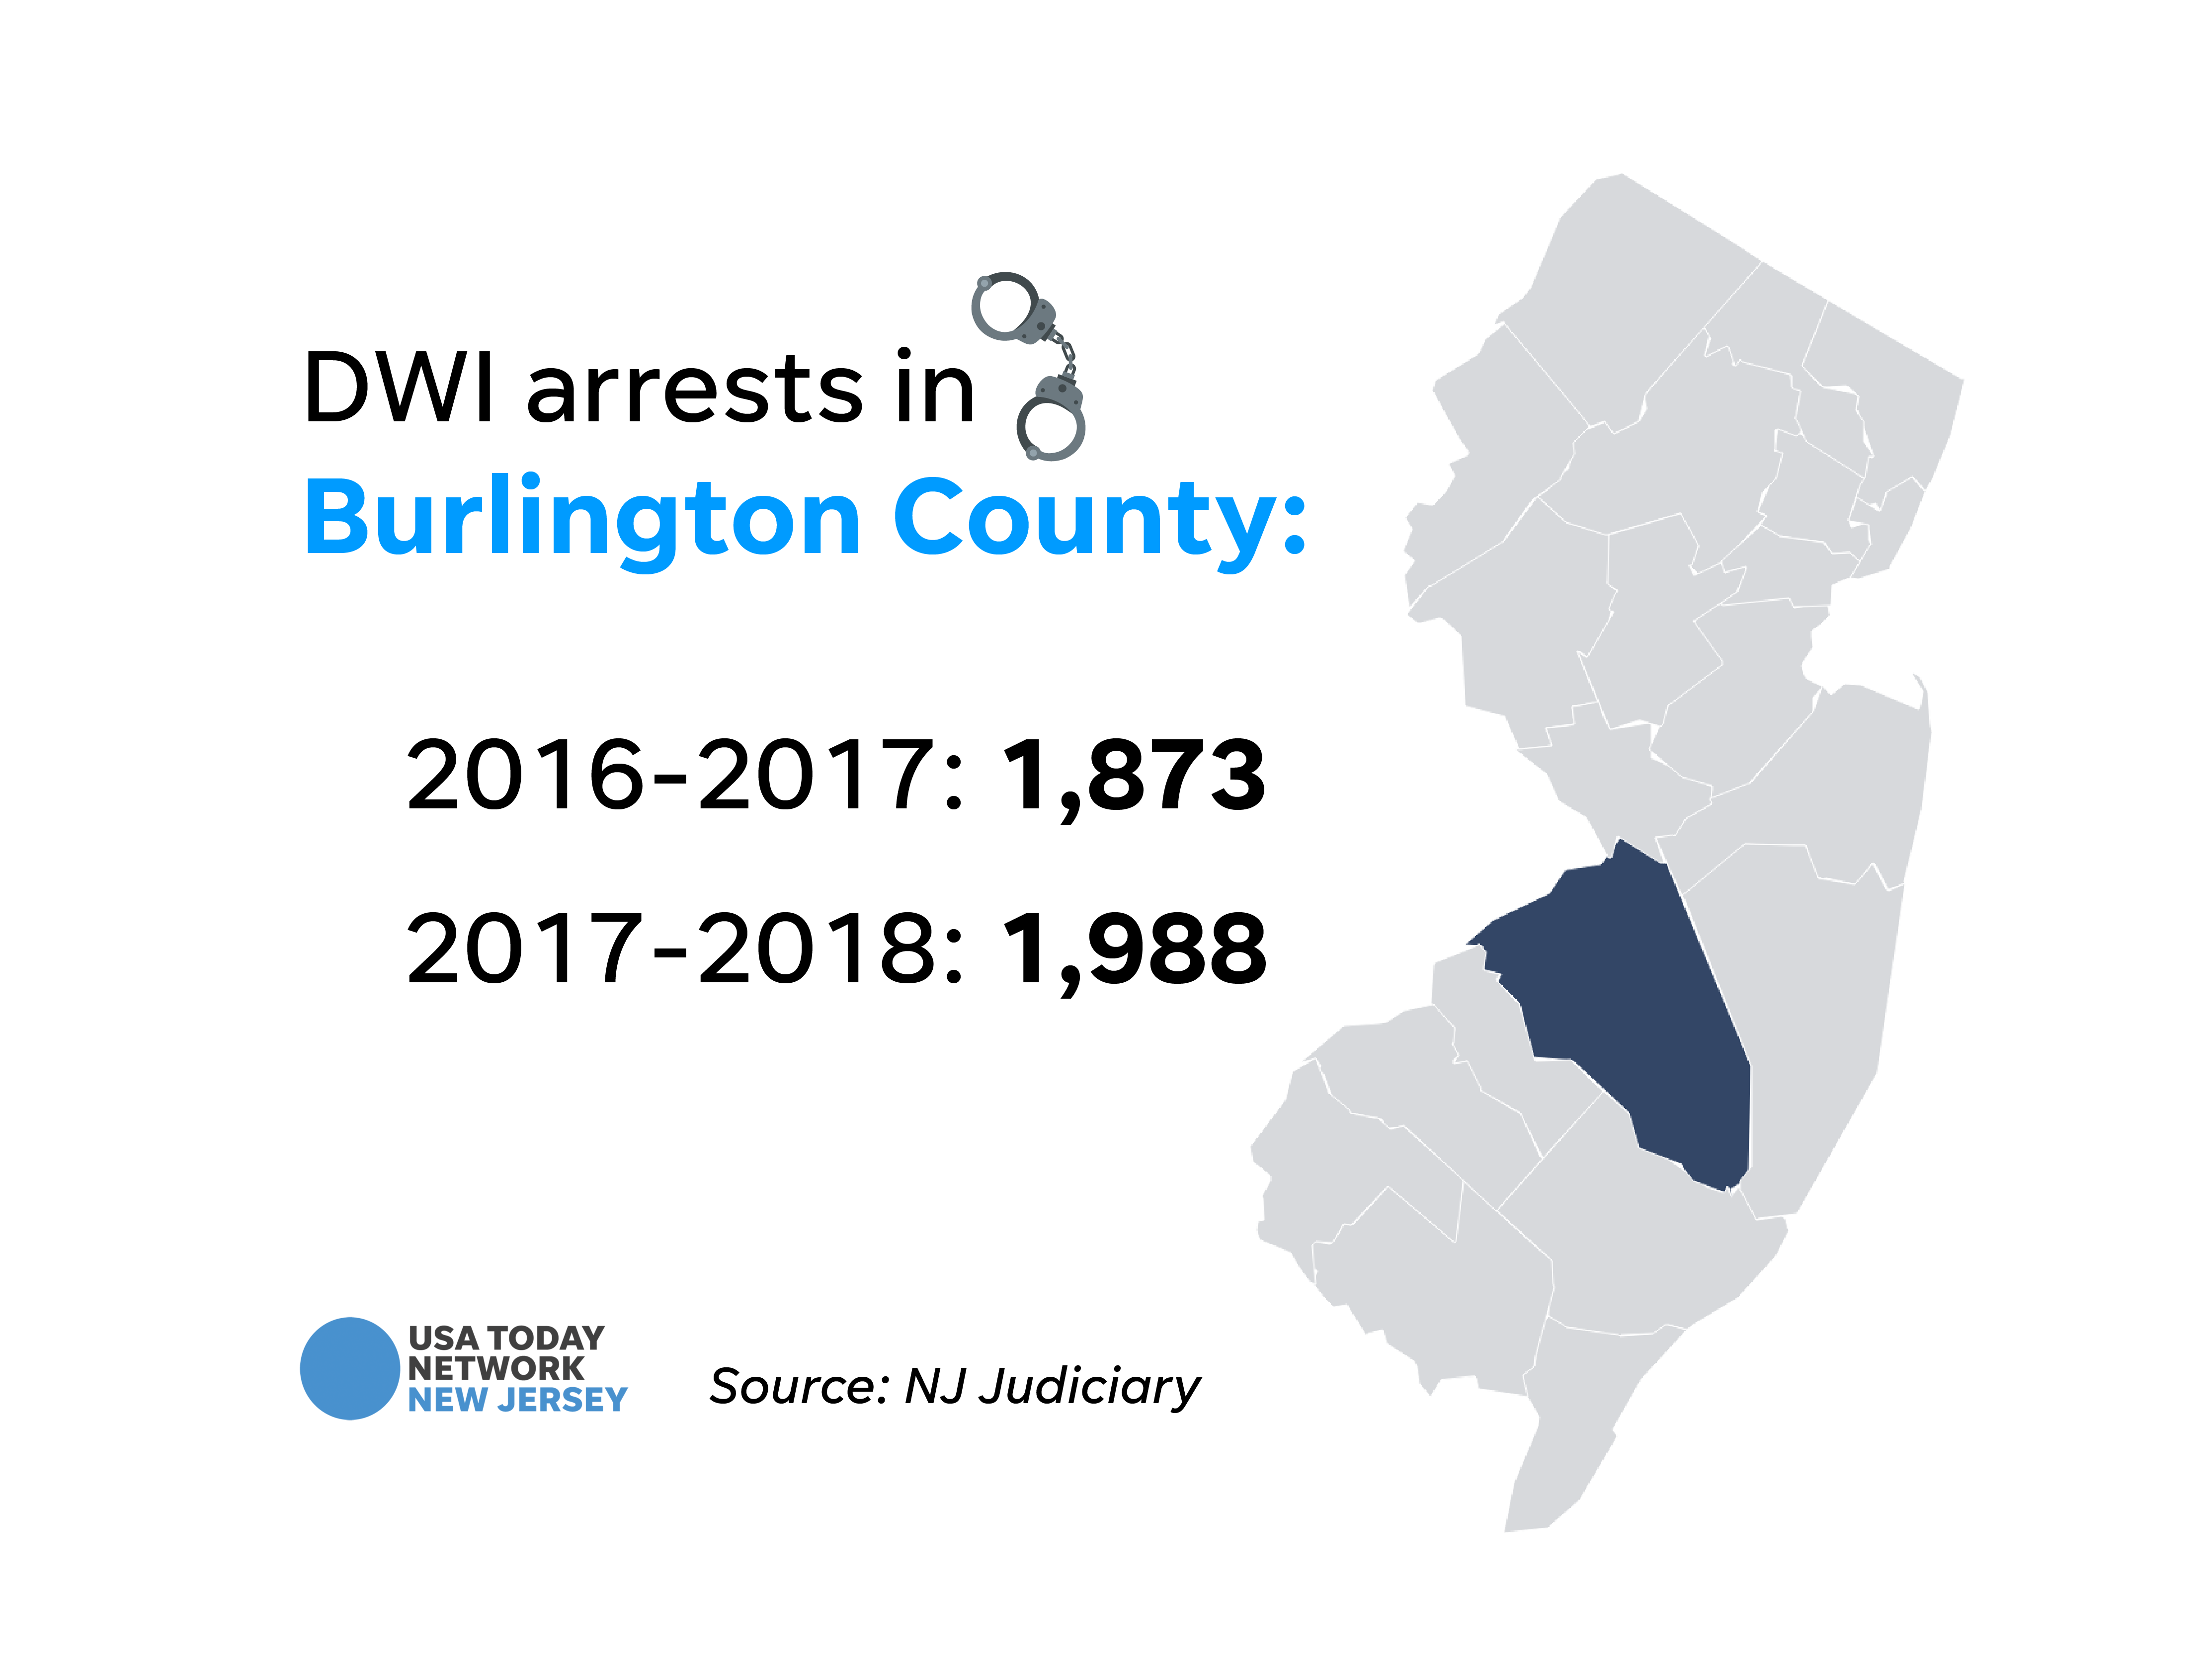 DWI arrests in Burlington County.